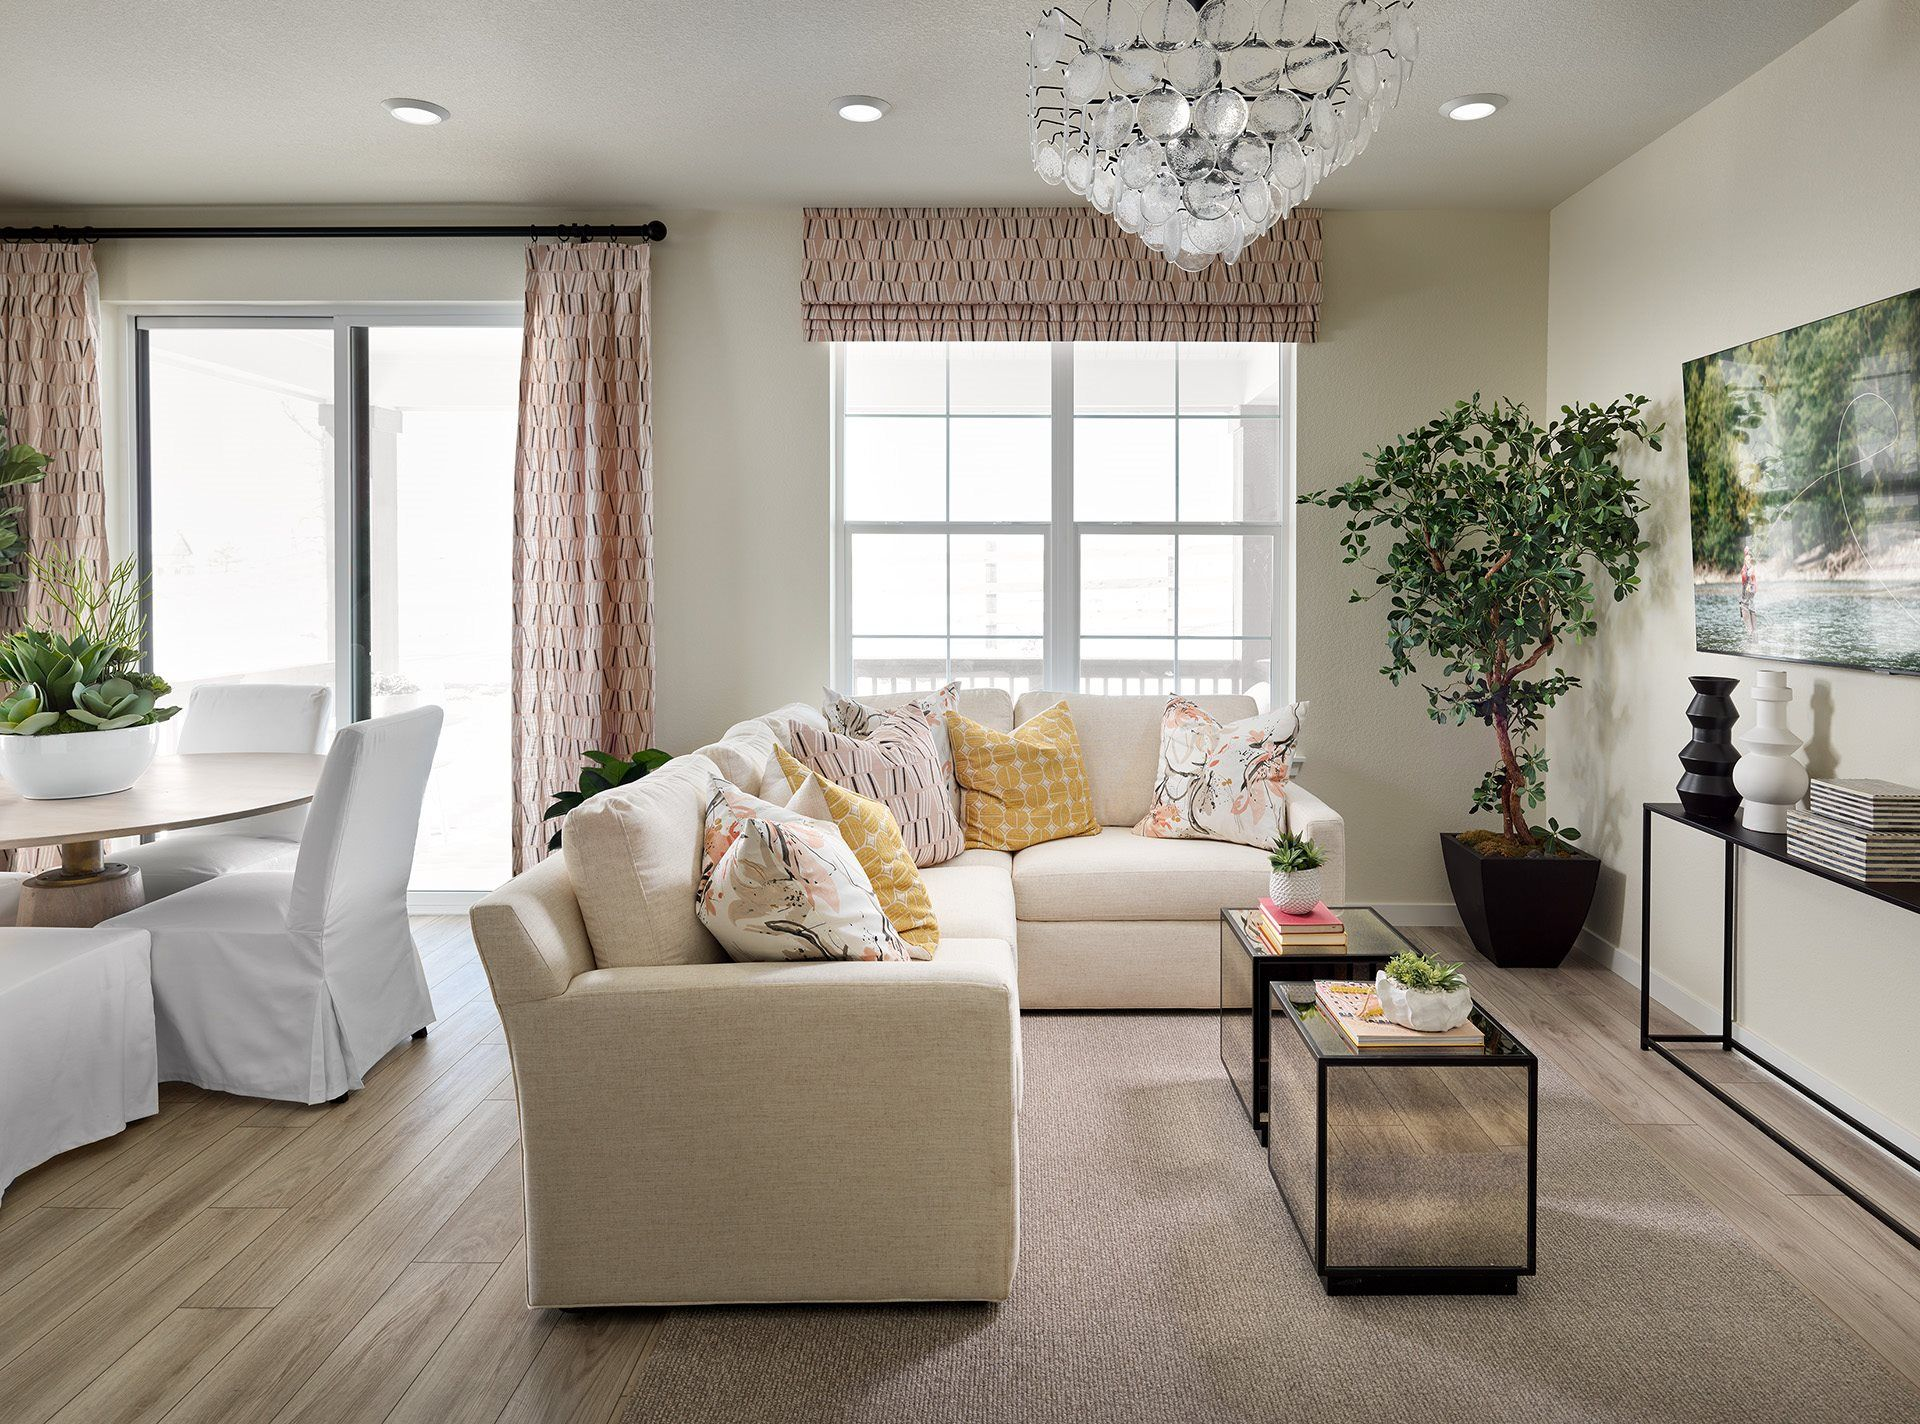 Living Area featured in the Snowmass By Lennar in Denver, CO